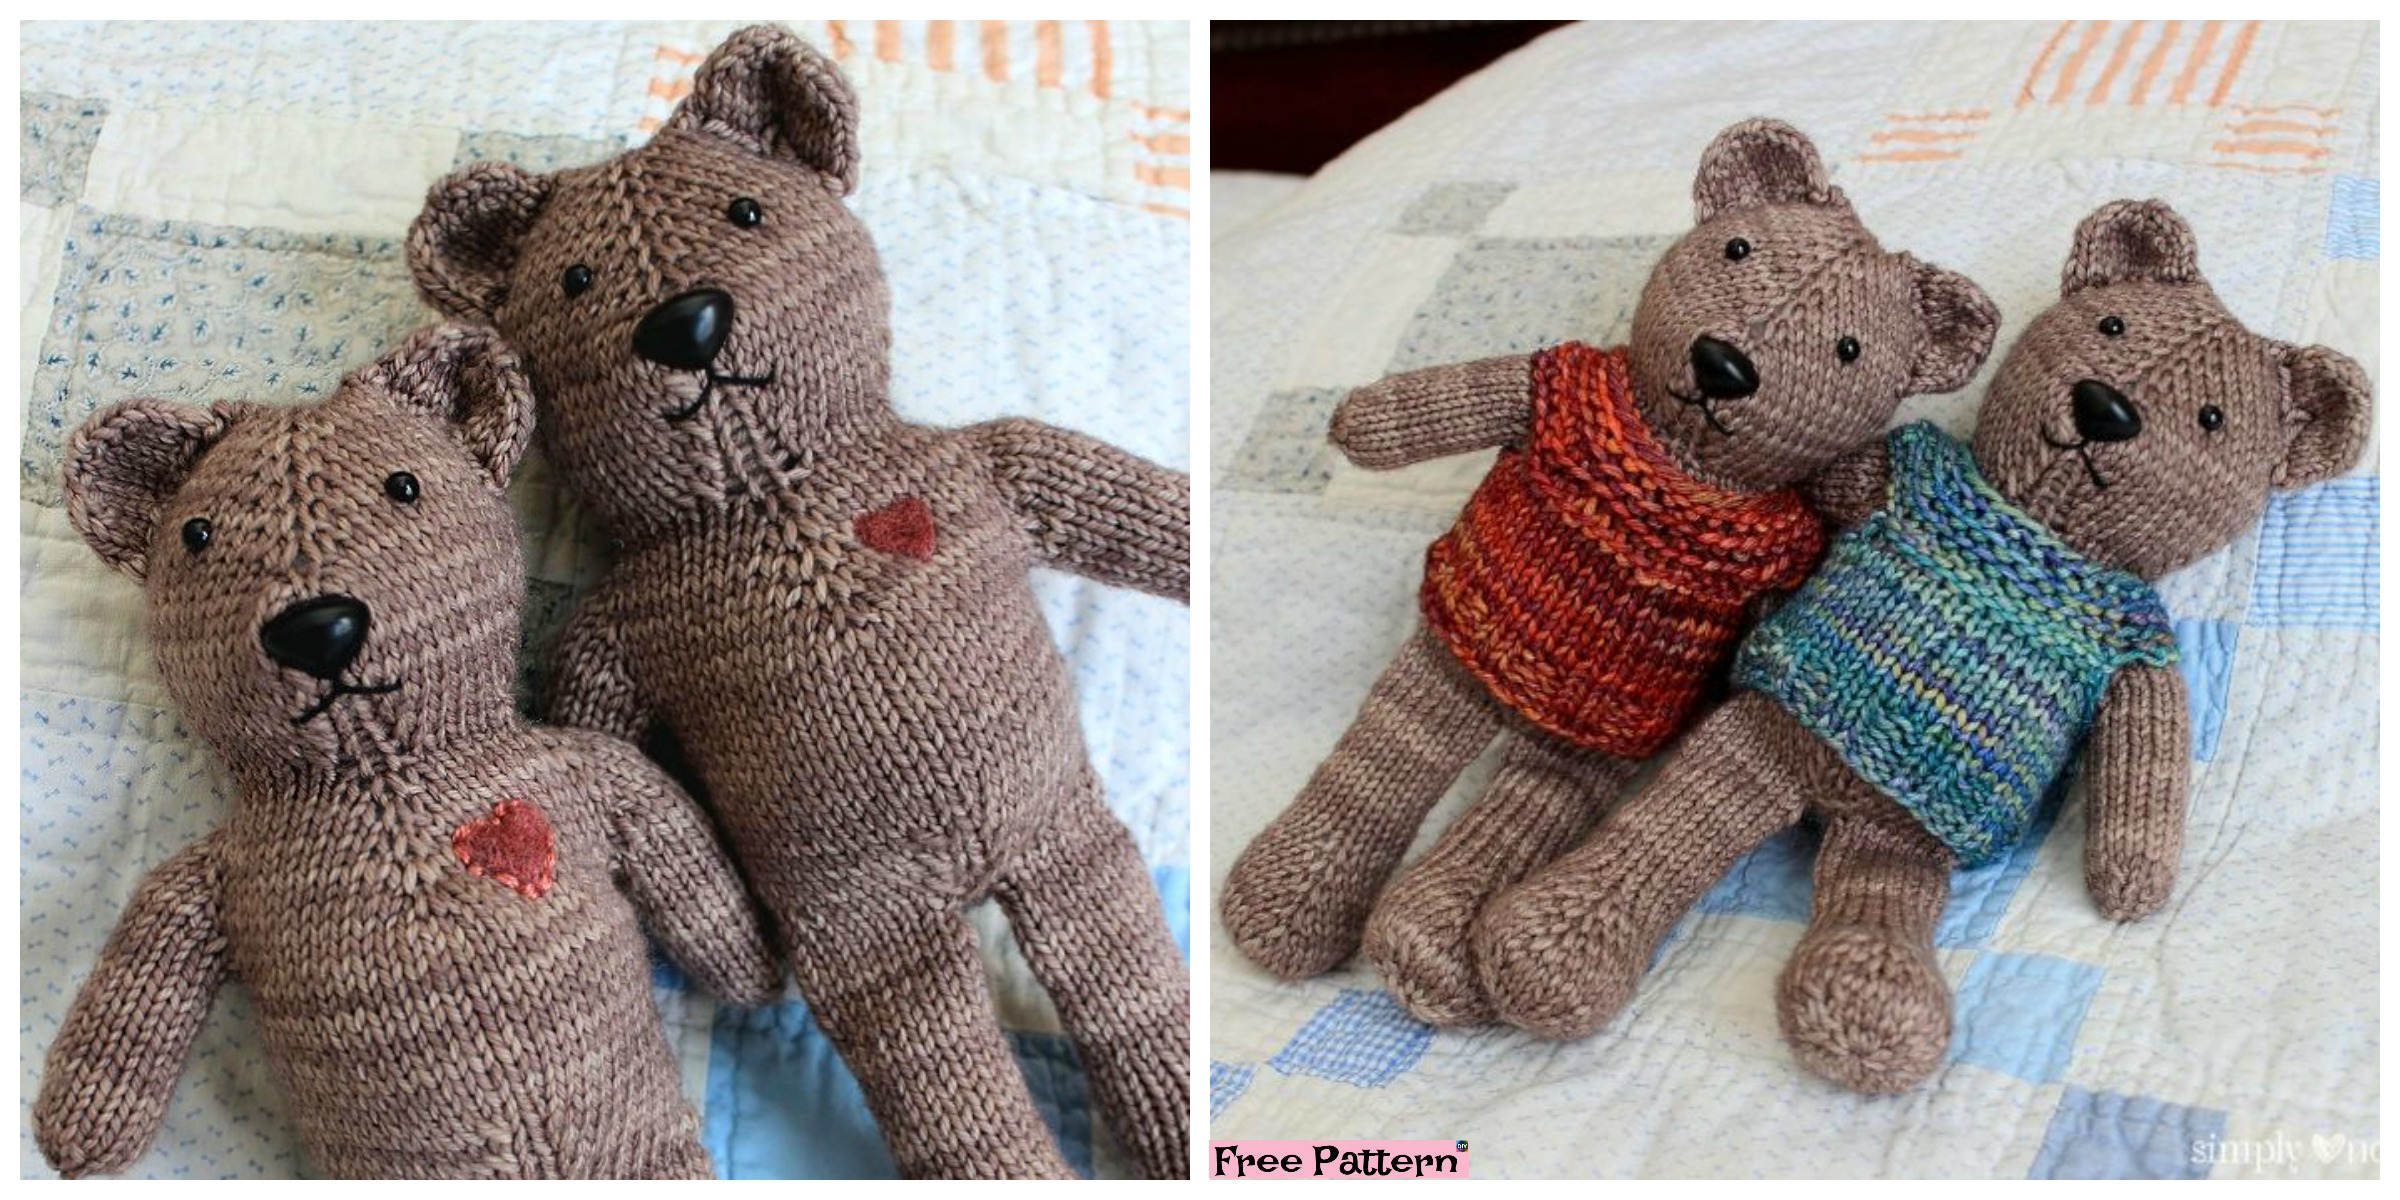 One Piece Knitted Teddy Bear - Free Pattern - DIY 4 EVER